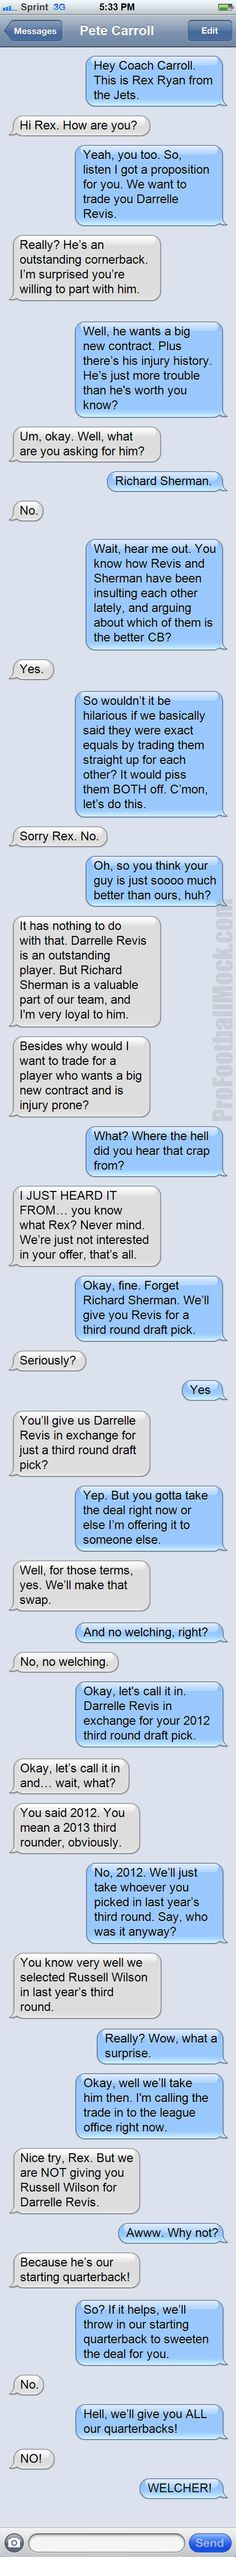 Intercepted Text: The Jets Want To Trade Darrelle Revis - ProFootballMock.com